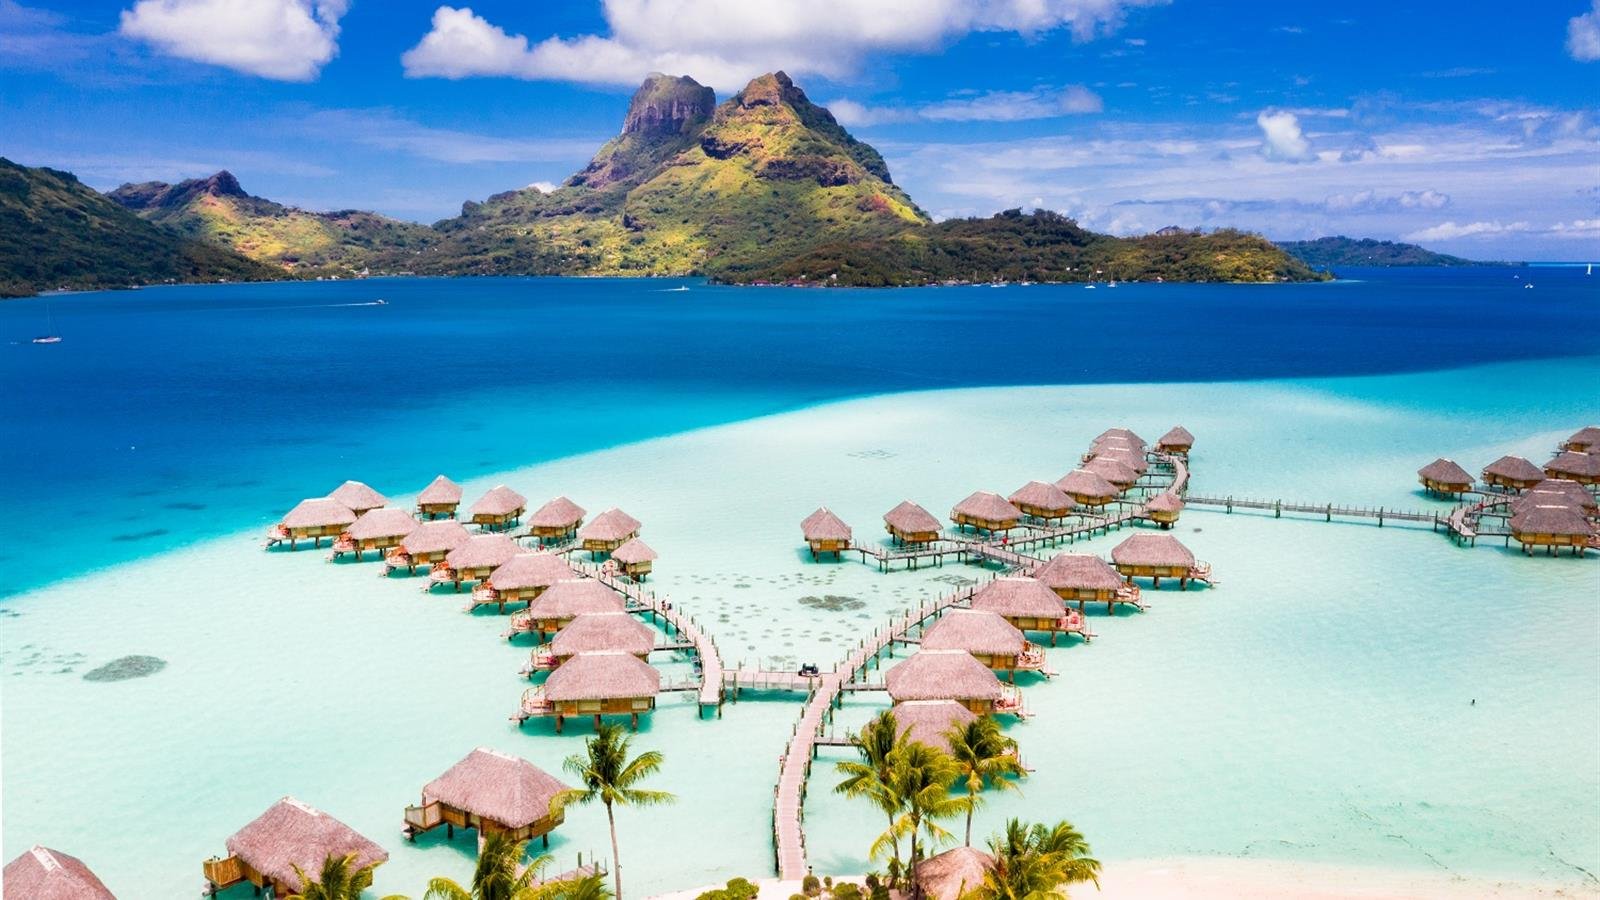 Bora Bora Island >> Bora Bora Pearl Beach Resort Spa 4 Star Hotel In Bora Bora